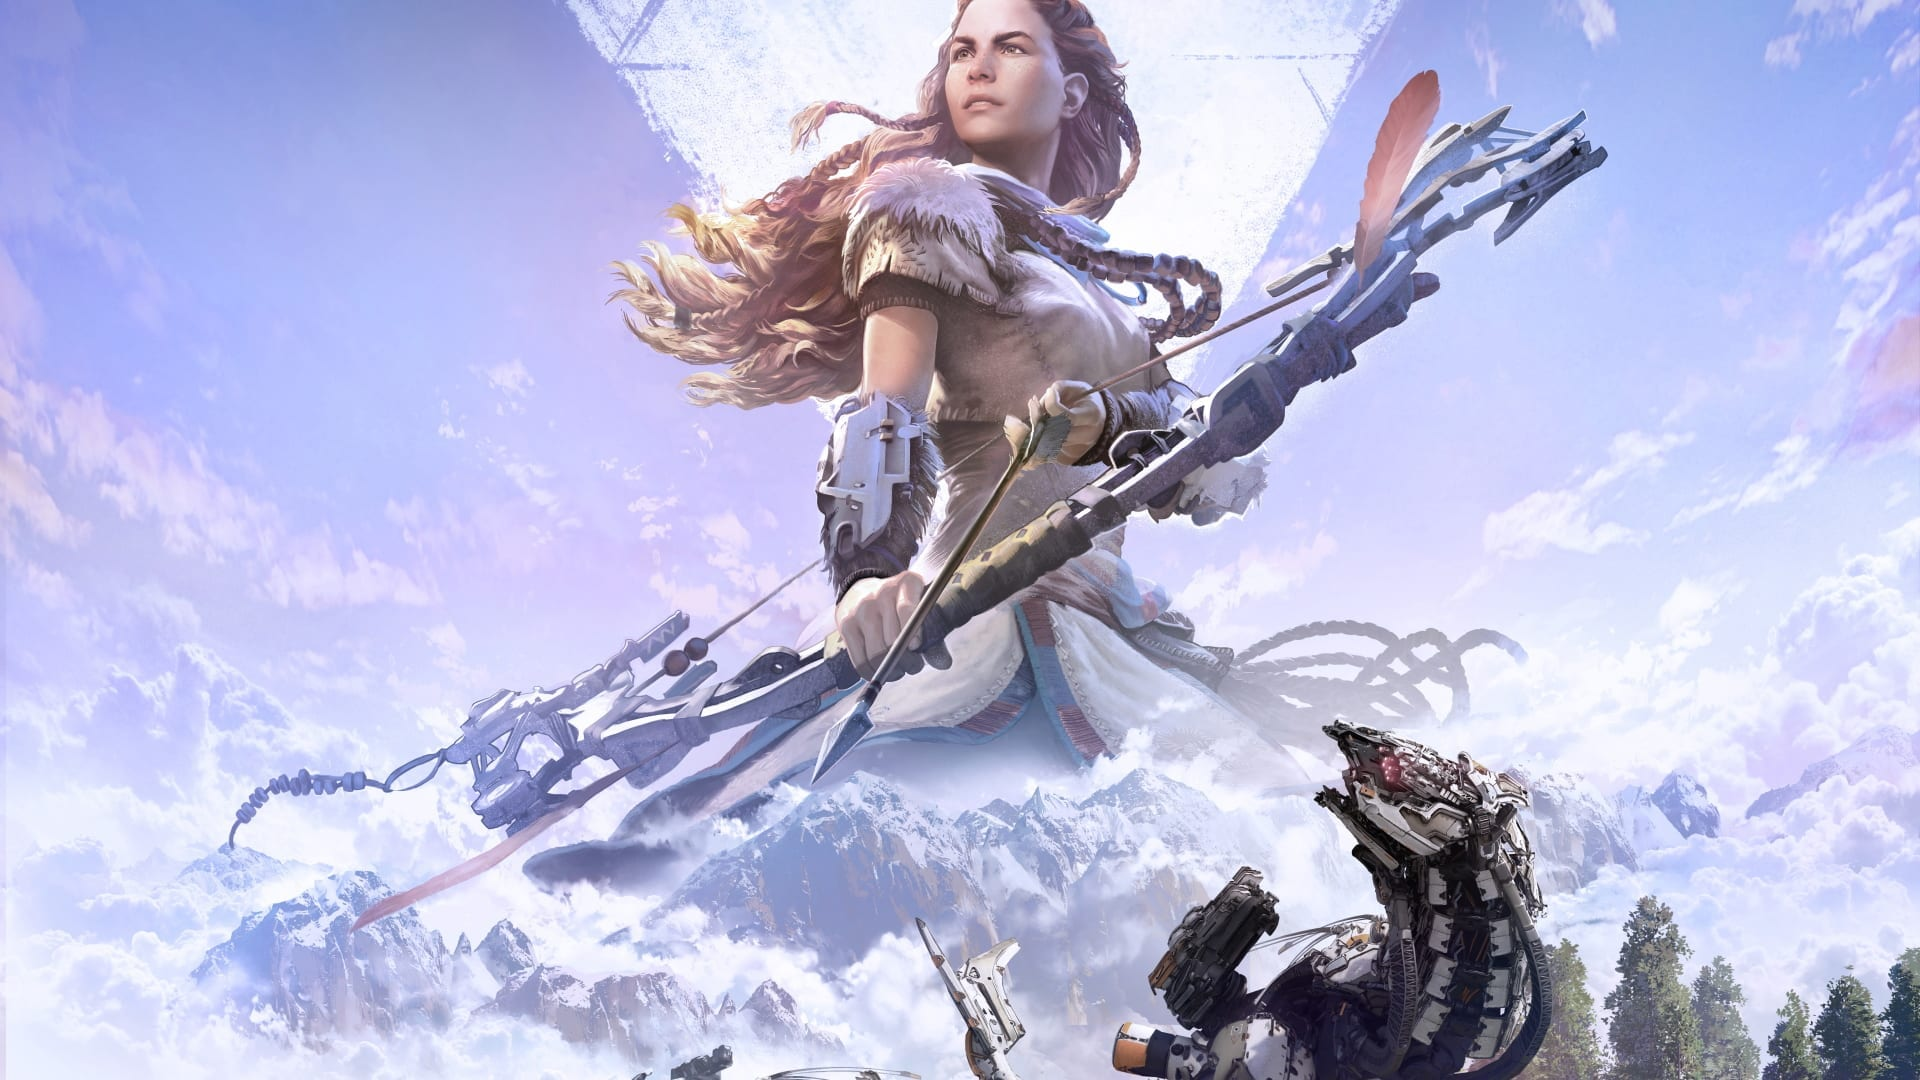 Horizon Zero Dawn is Now Free to All PlayStation Owners